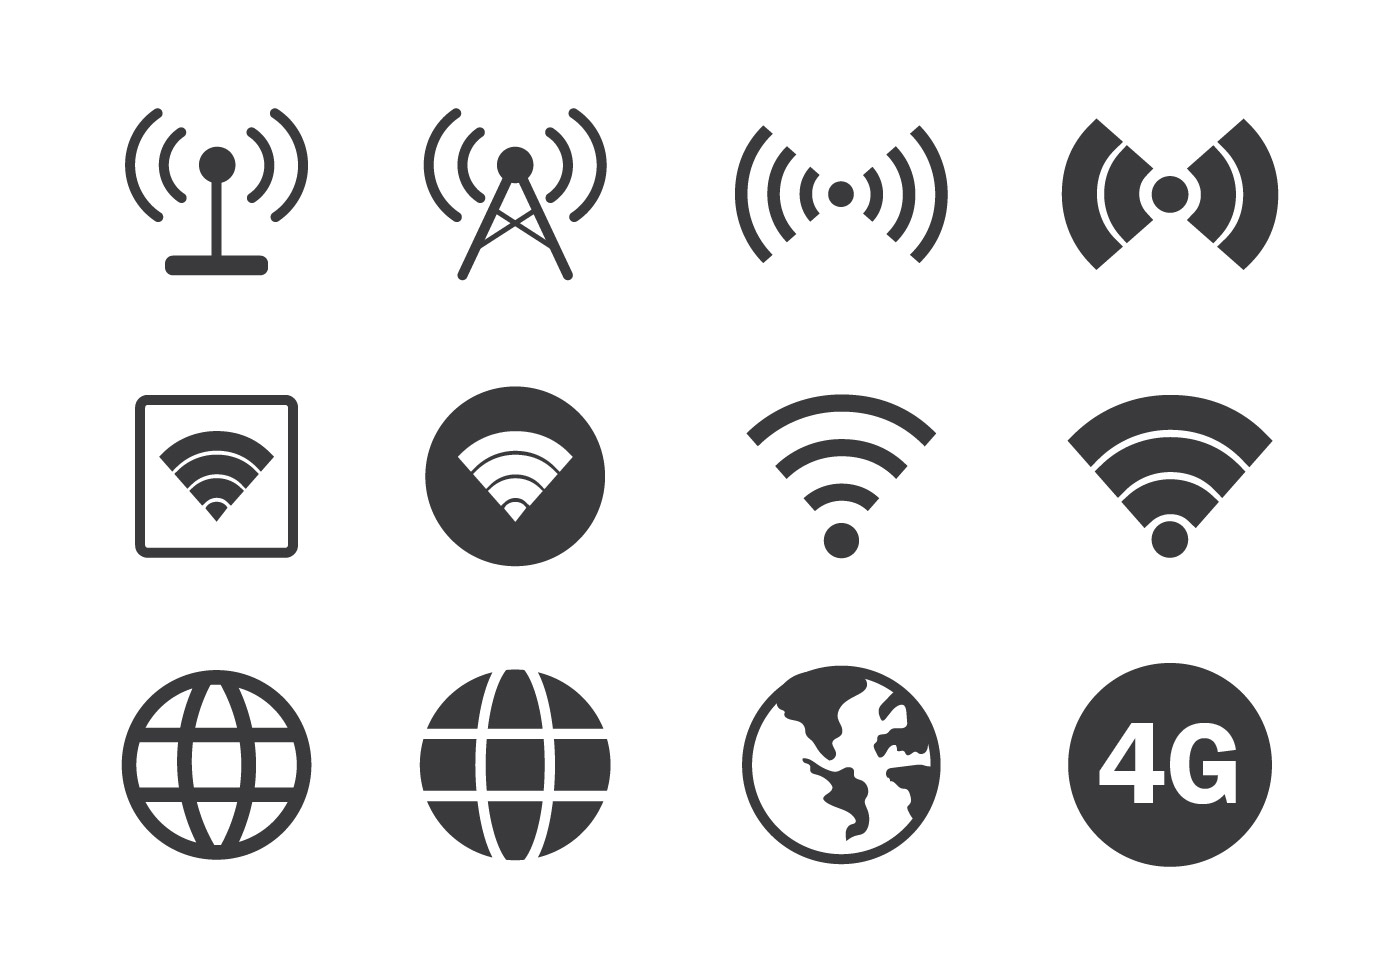 Internet connection icon download free vector art stock internet connection icon download free vector art stock graphics images buycottarizona Images